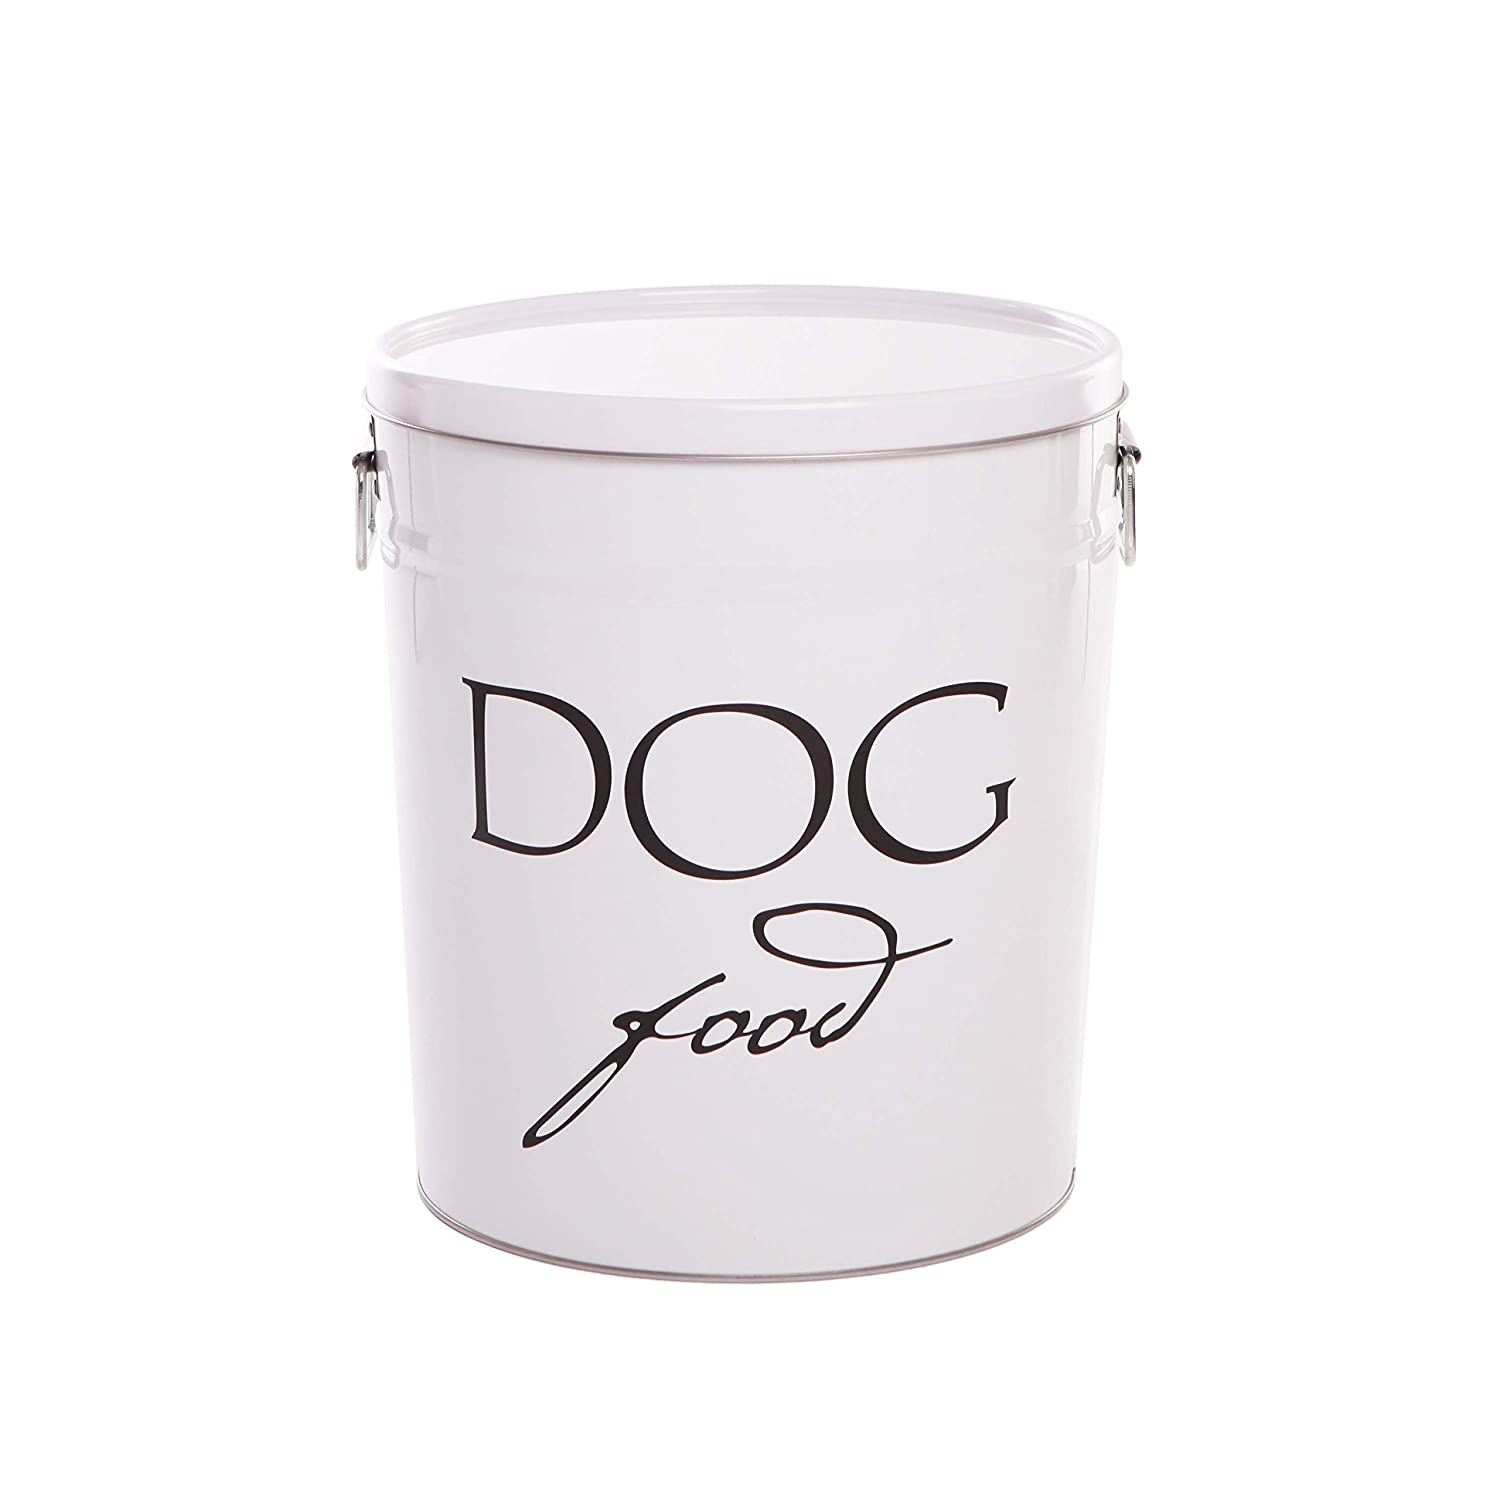 White Small (10lbs) White Small (10lbs) Harry Barker Dog Food Storage White 10 lb